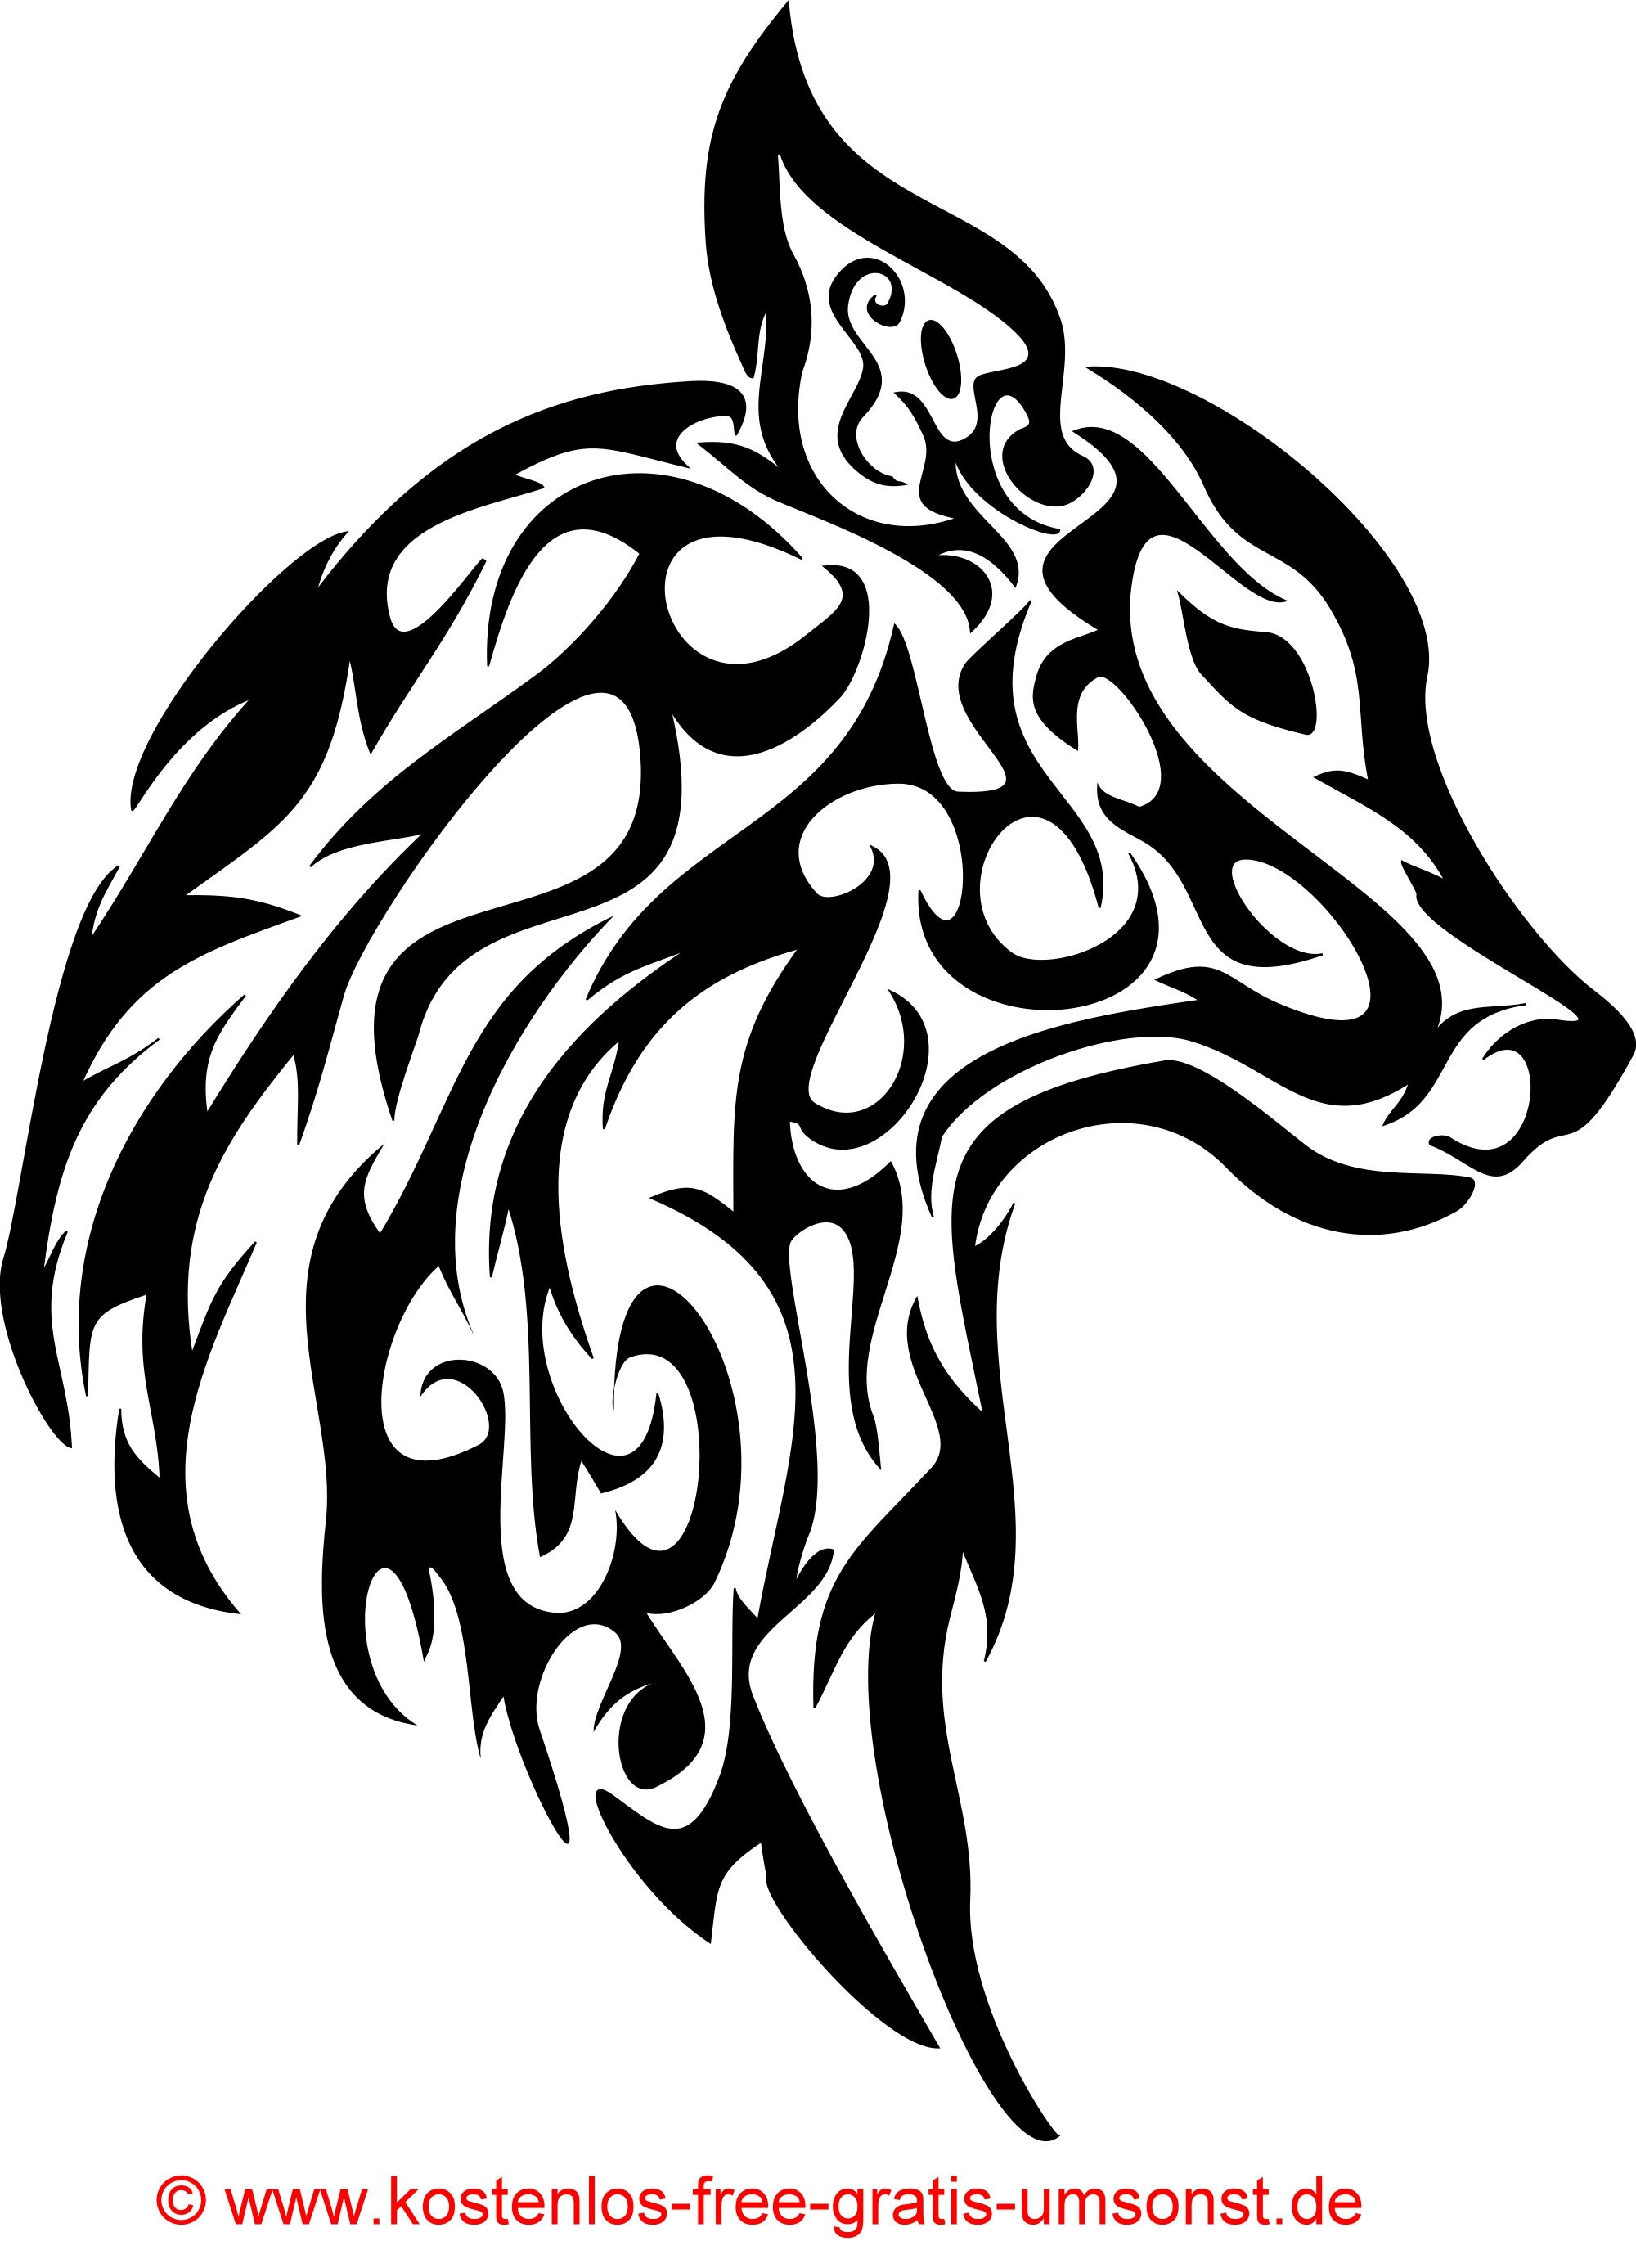 Tiere Tattoobild Hund Wolf Tattoomotive Tribal Art Black Dog Tattoo ...